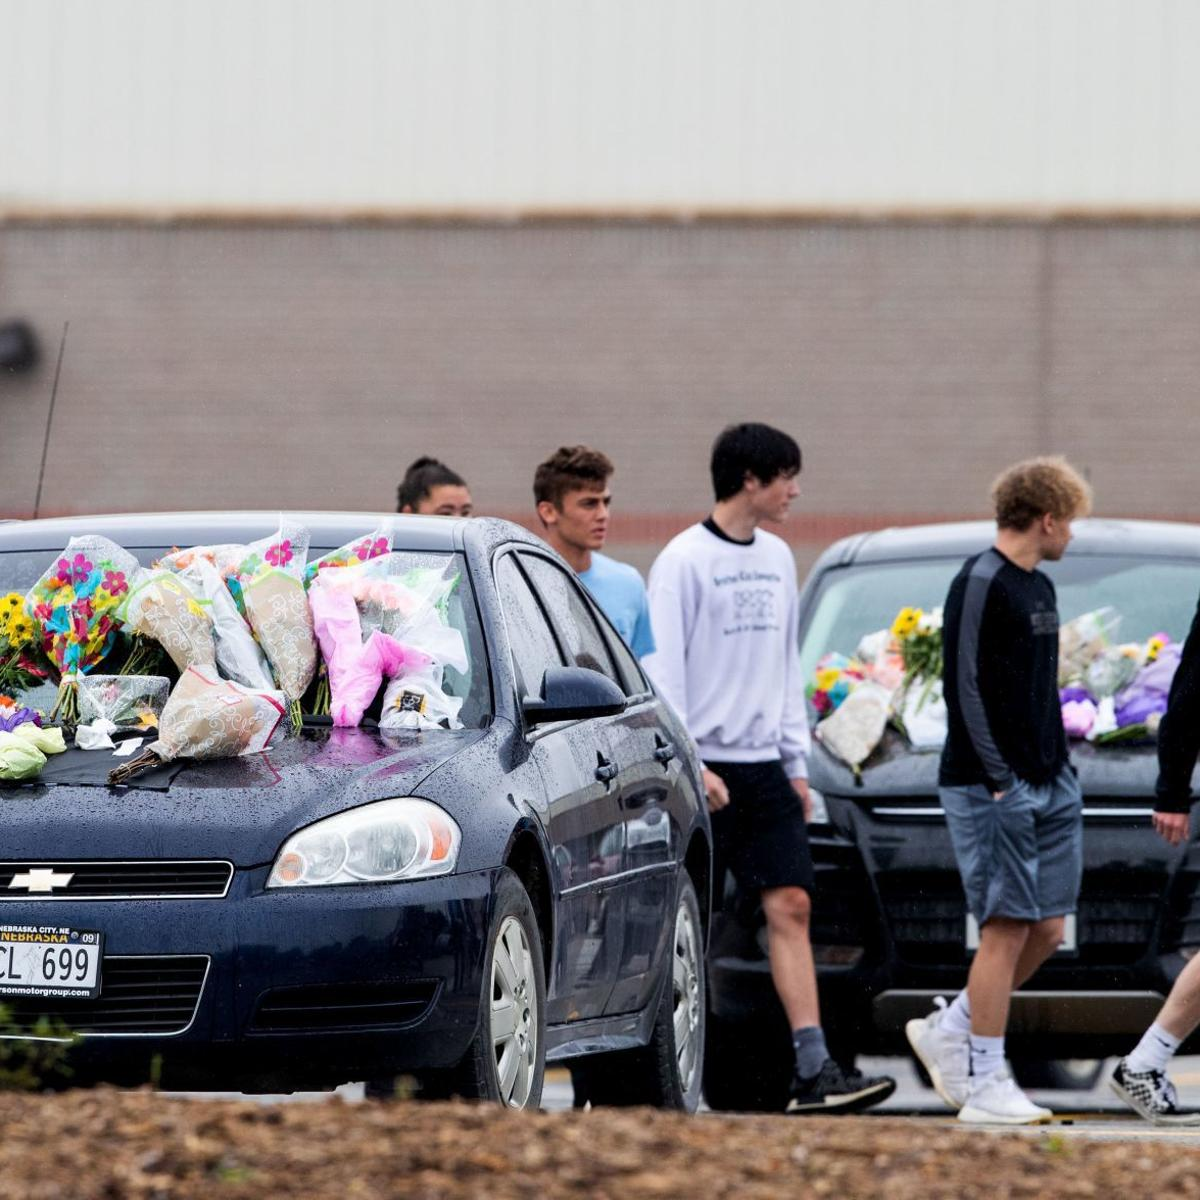 Gretna community mourns deaths of 4 teens in crash Monday